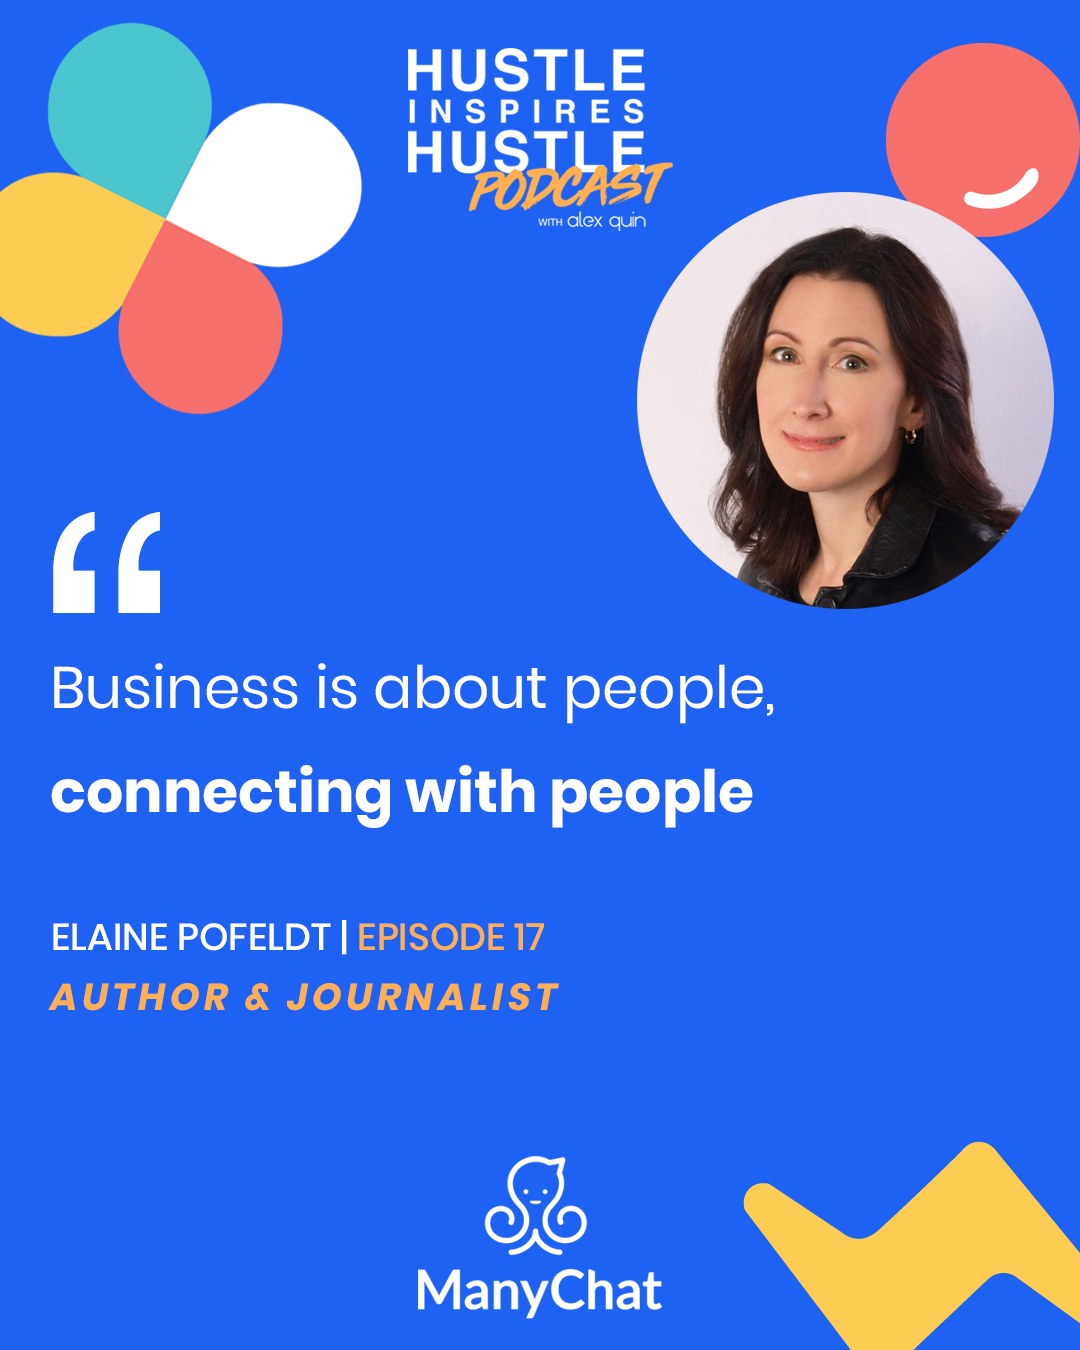 Elaine Pofeldt & Alex Quin | On Hustle Inspires Hustle Podcast